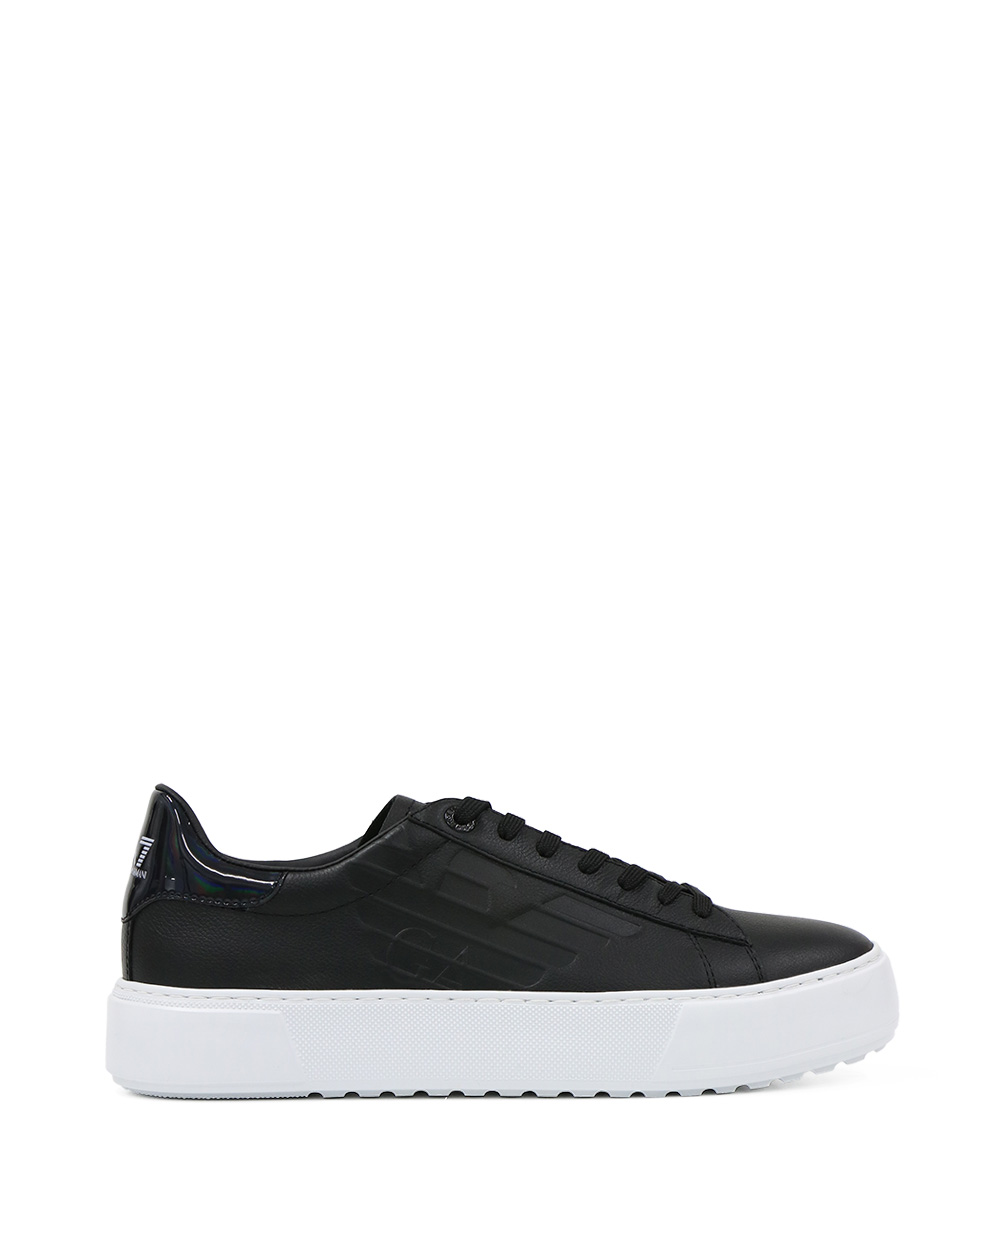 EA7 Inclining Stripes Sneakers